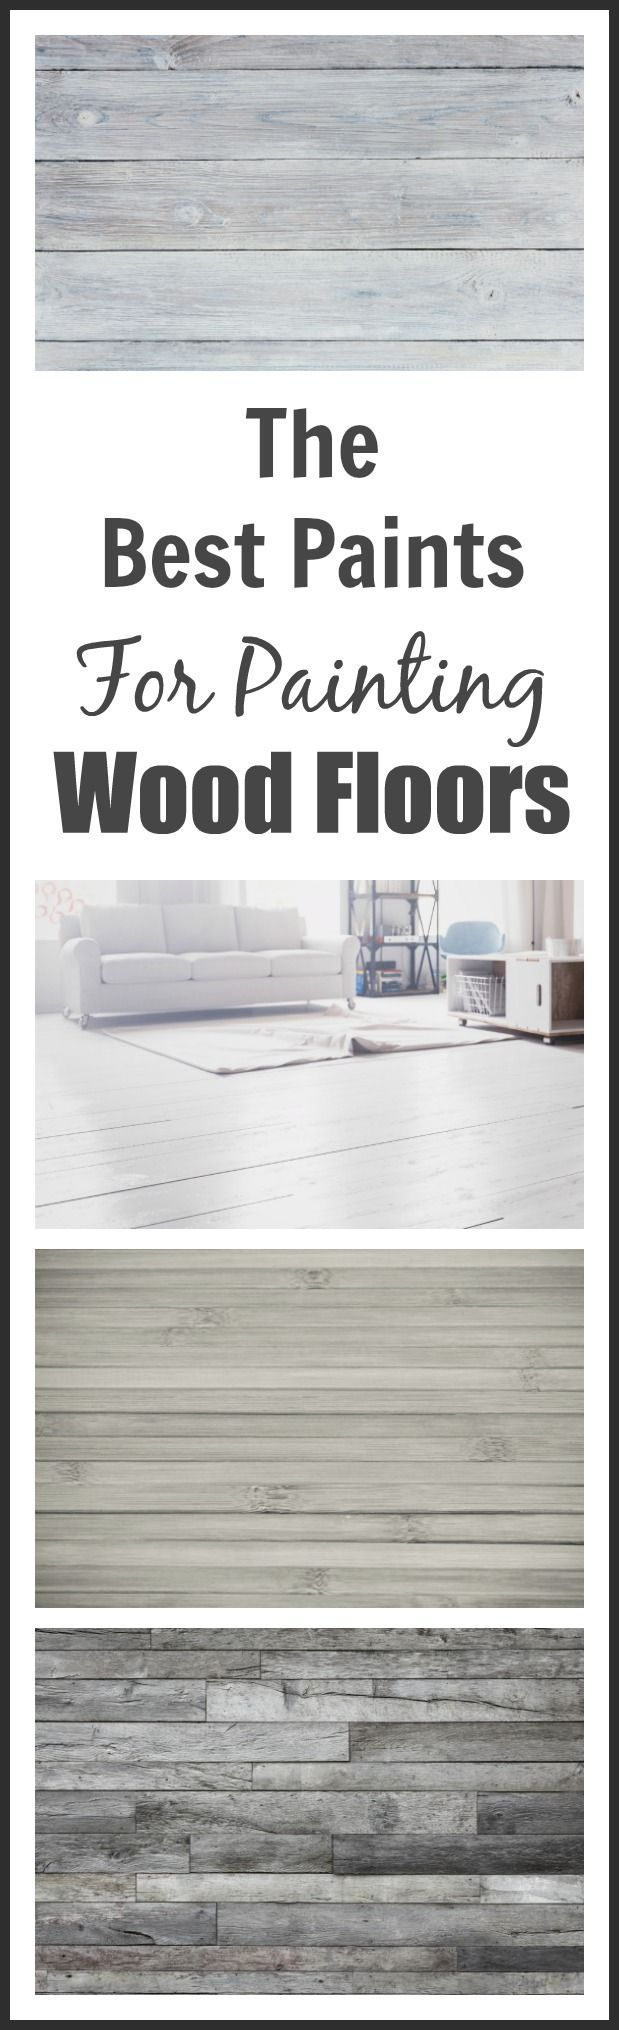 How to paint wood floors that are too damaged to be refinished ...